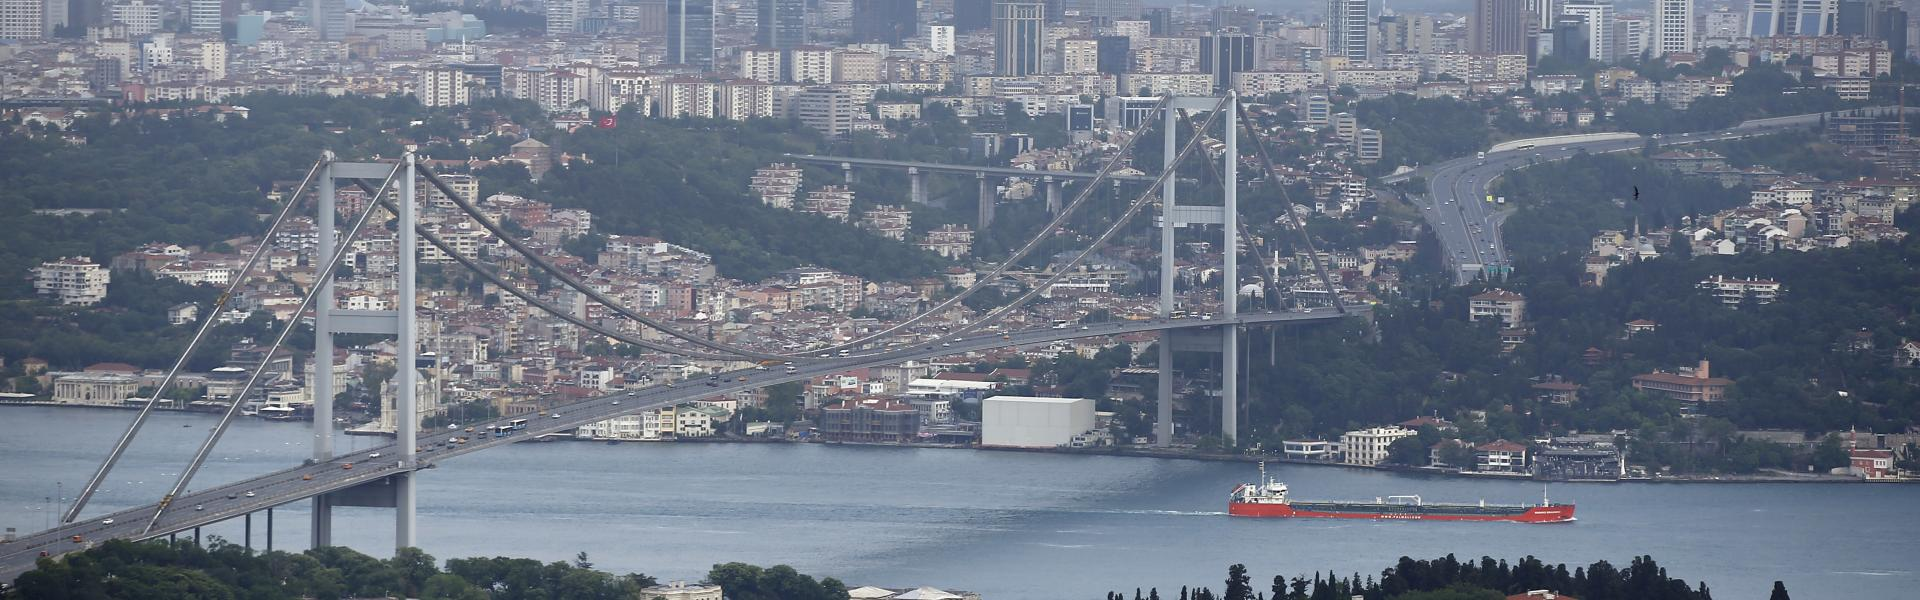 "Turkey's construction frenzy and the ""Crazy Channel Project"""